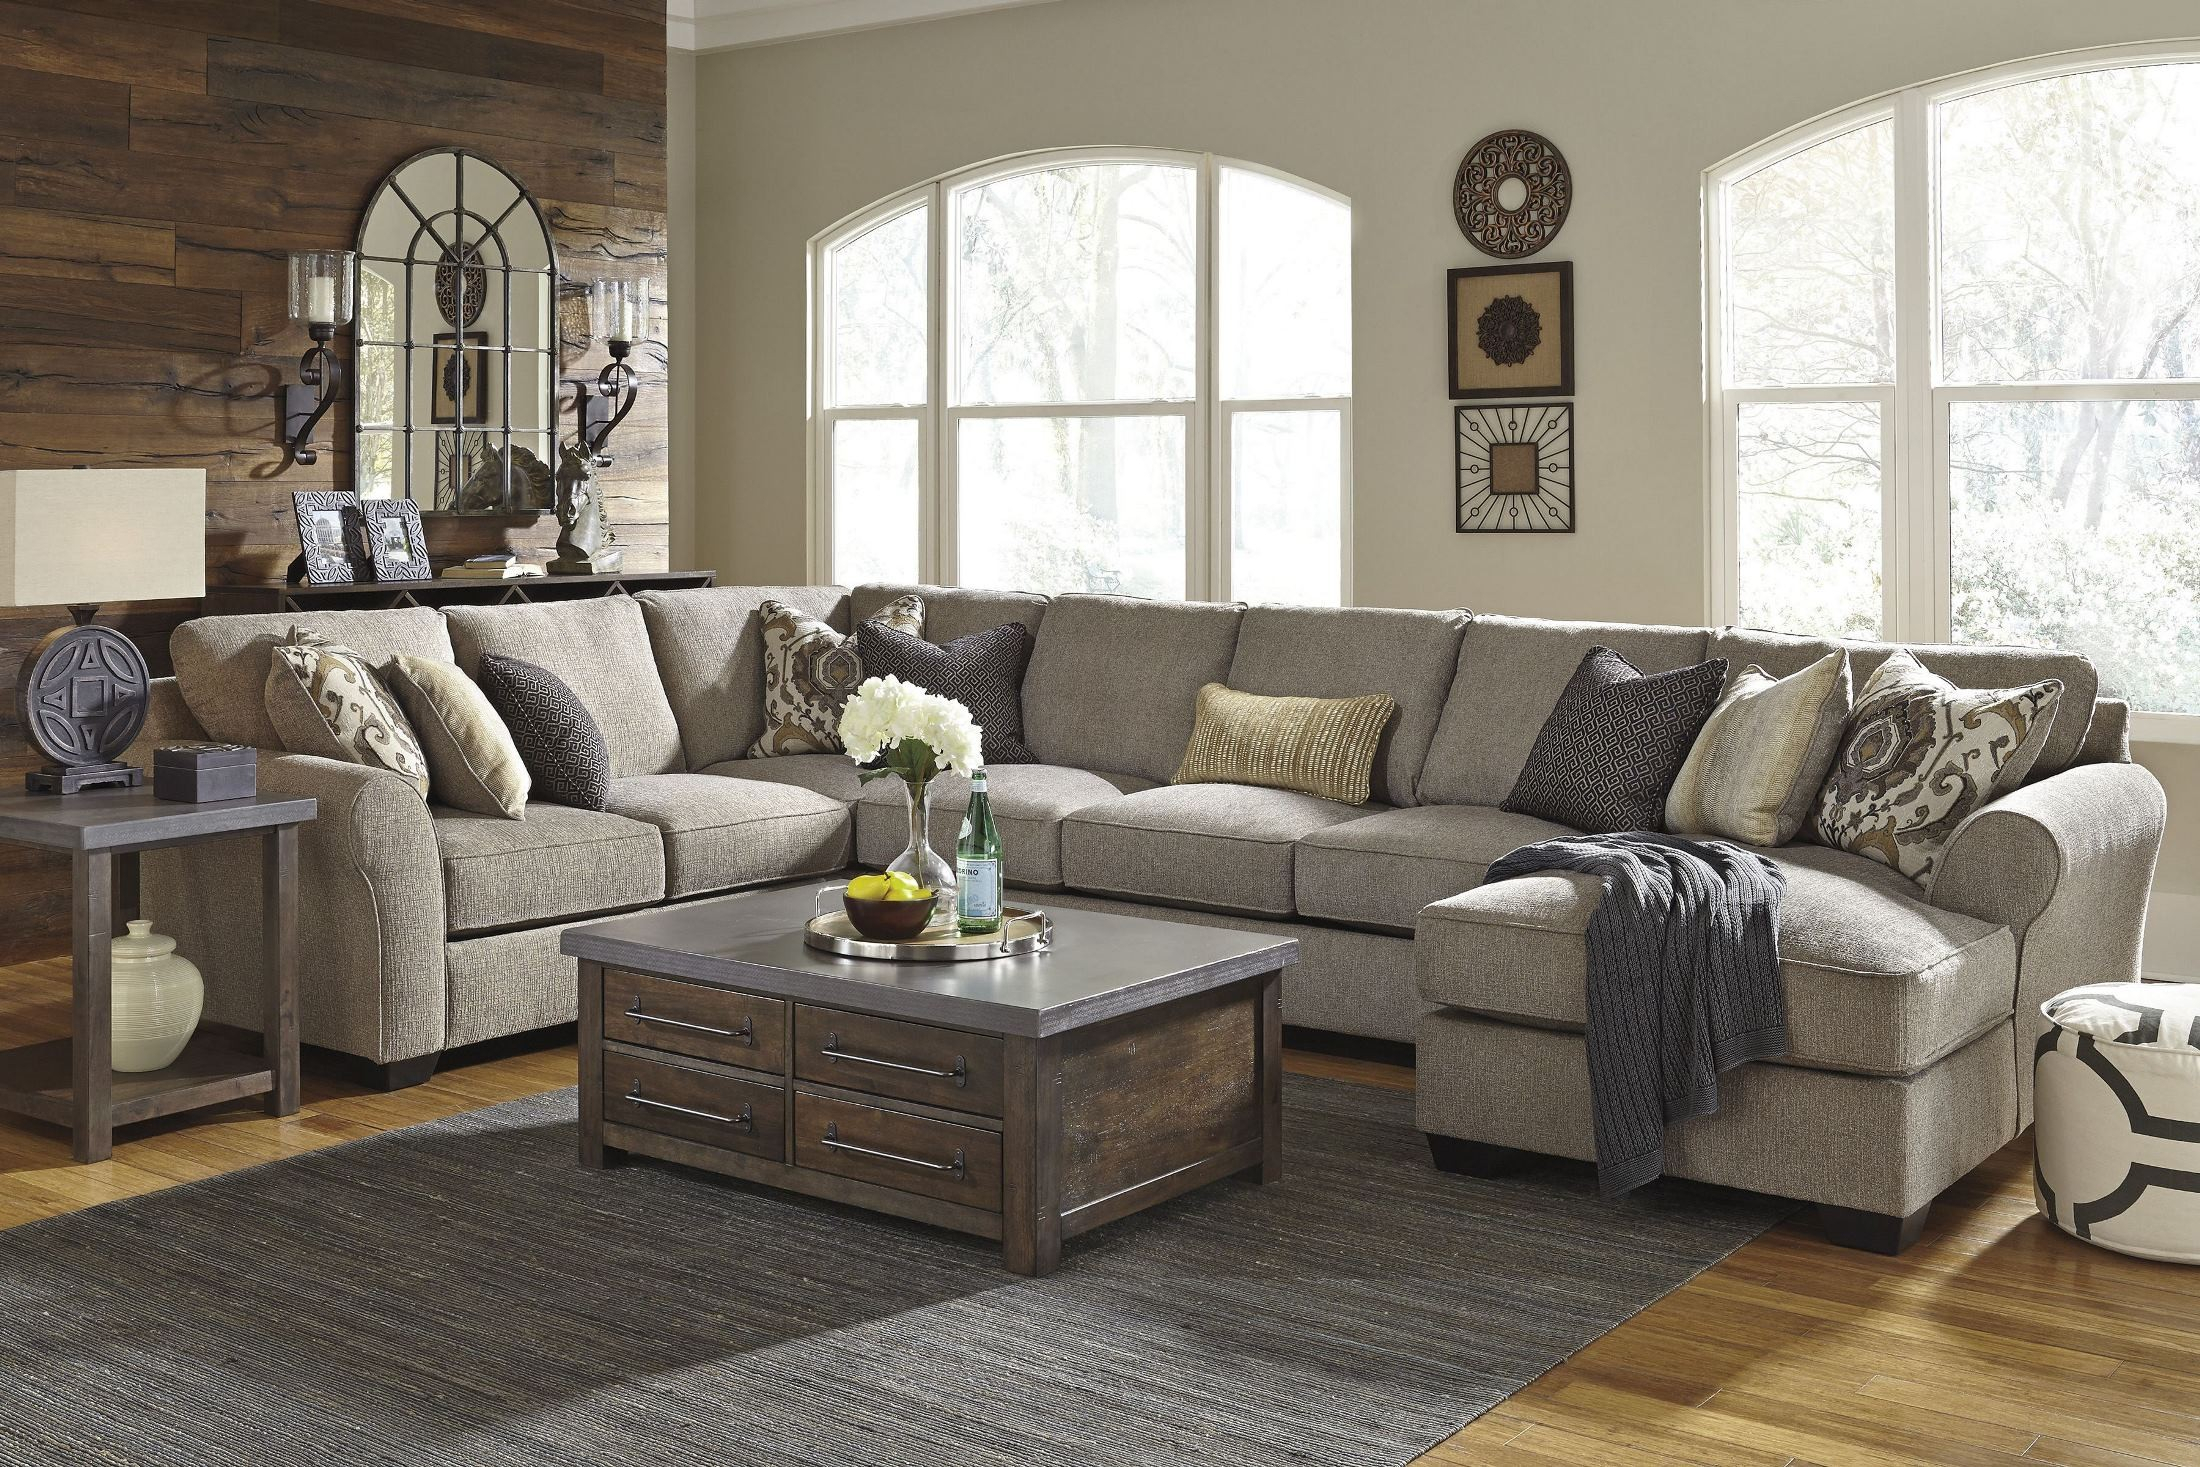 Pantomine Driftwood Raf Large Chaise Sectional From Ashley Inside Oversized Sofa Chairs (View 6 of 15)